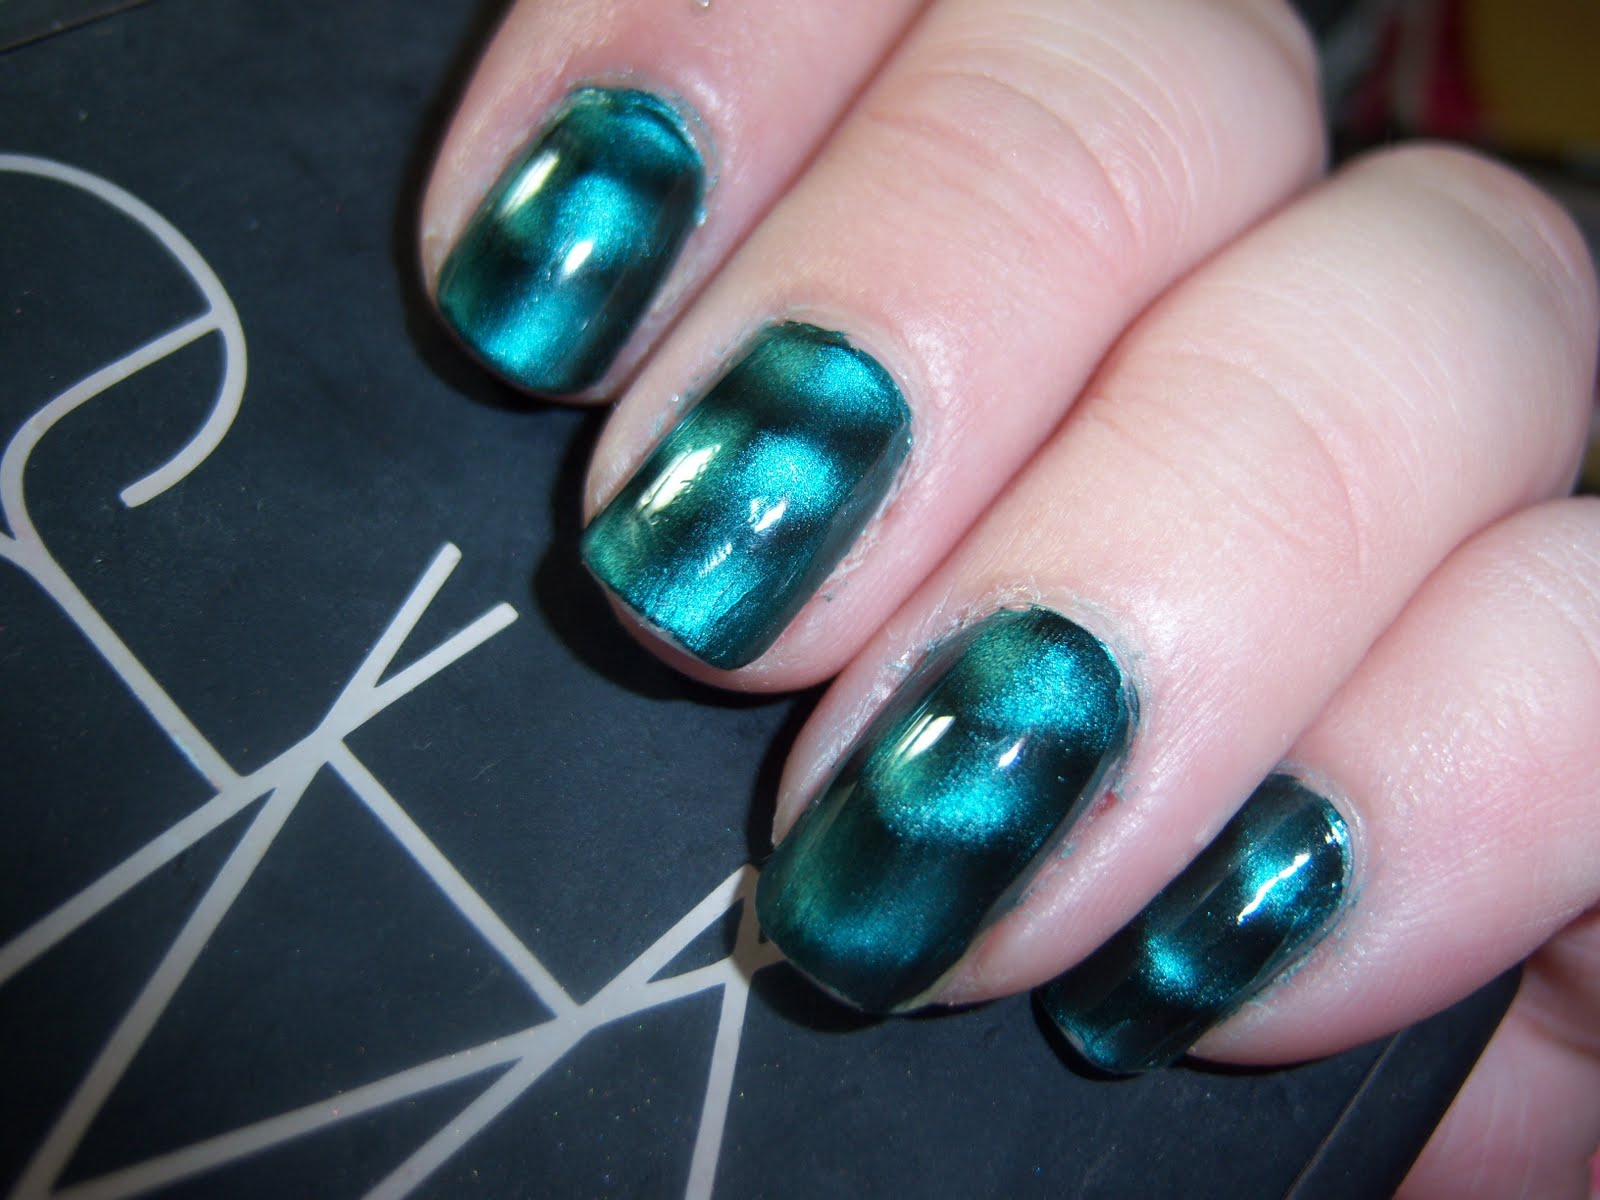 Nails Inc - Whitehall Magnetic Nail Polish | Ashley Malice\'s Wonderland